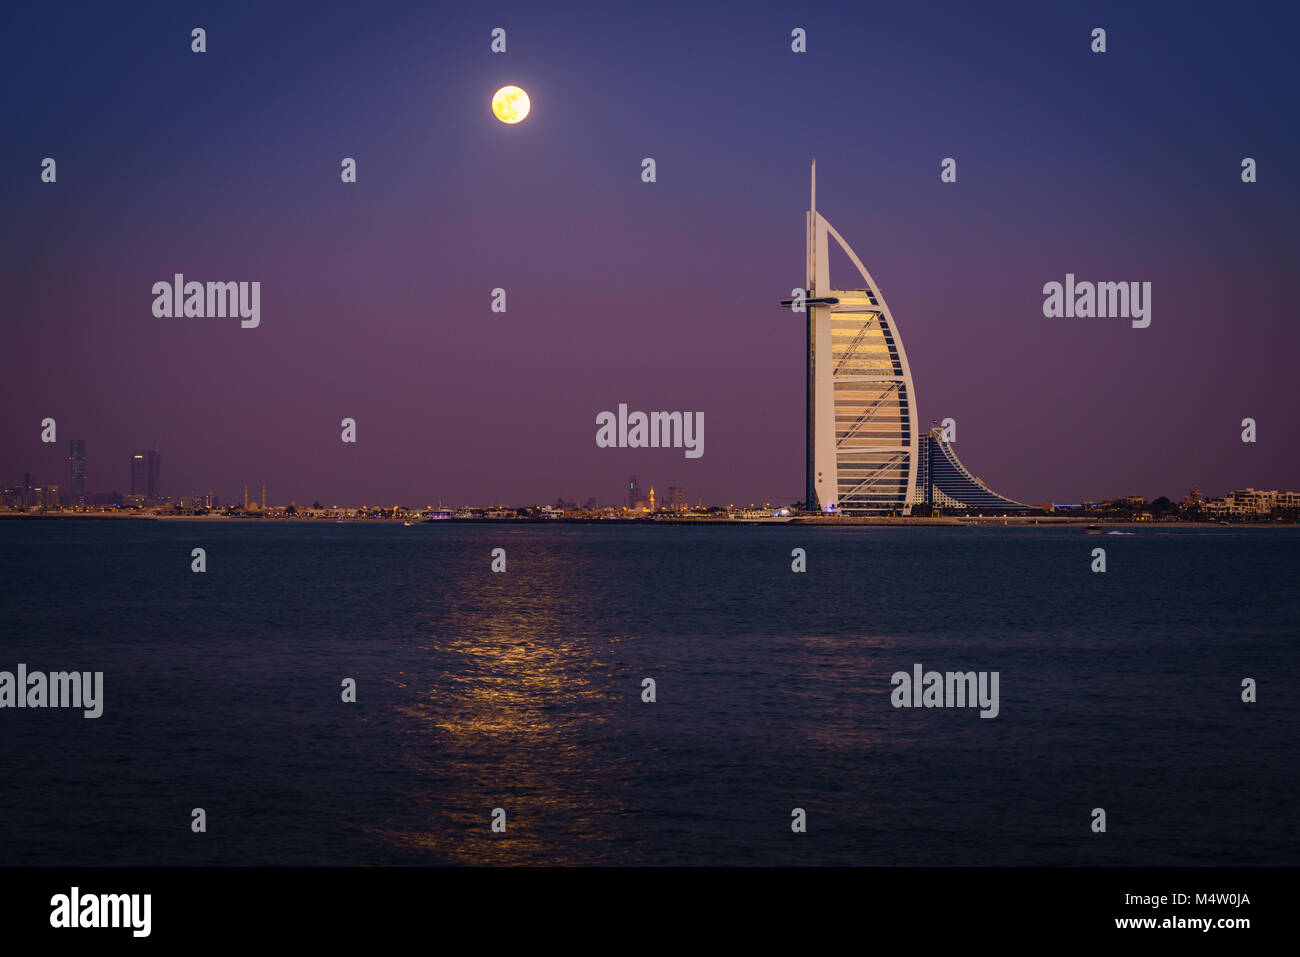 Dubai, UAE, December 13, 2016: full moon is rising over Burj Al Arab - the world's only 7-star luxury hotel - Stock Image